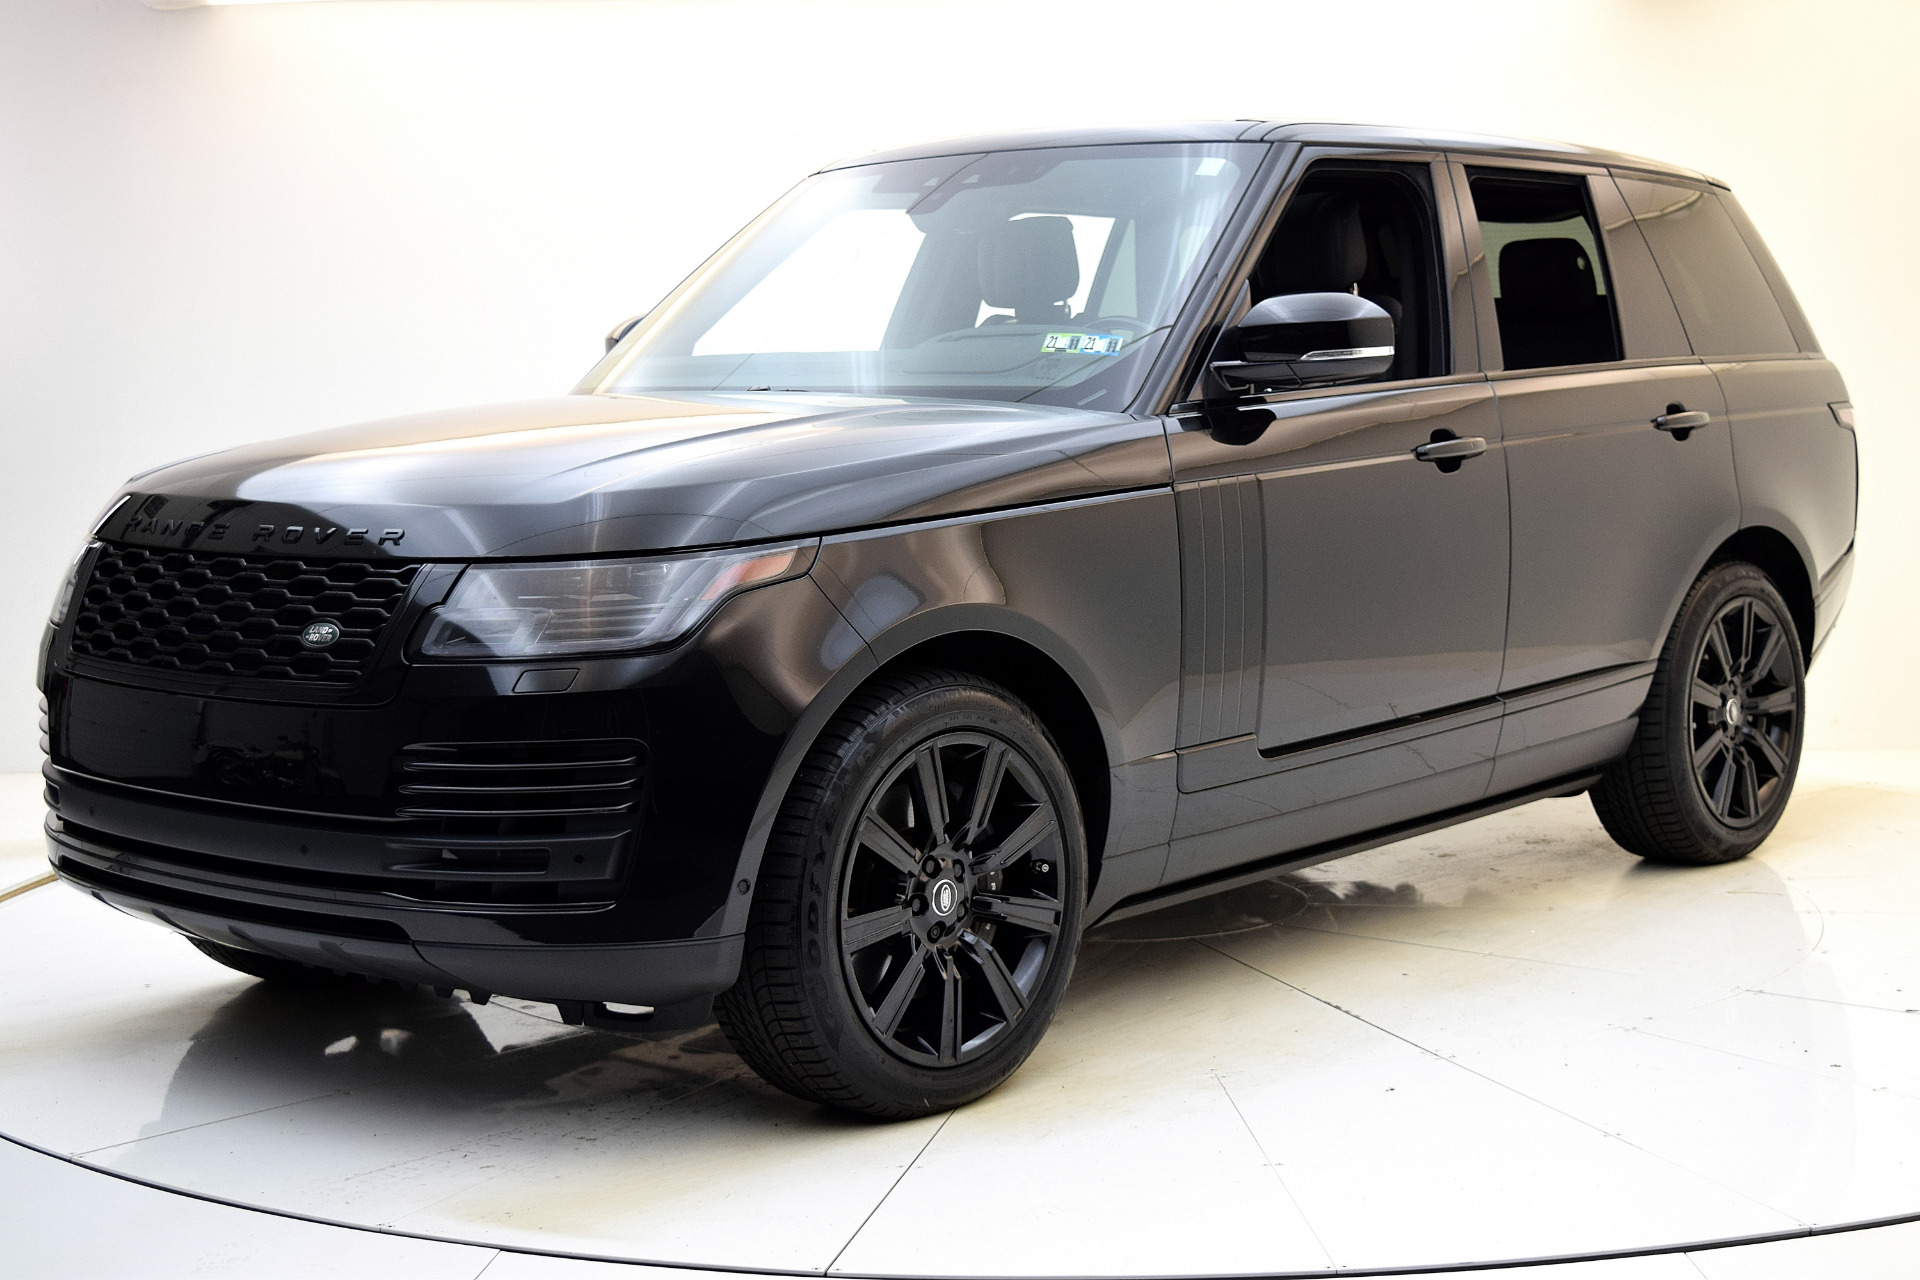 Used 2019 Land Rover Range Rover SC for sale $114,880 at F.C. Kerbeck Aston Martin in Palmyra NJ 08065 2